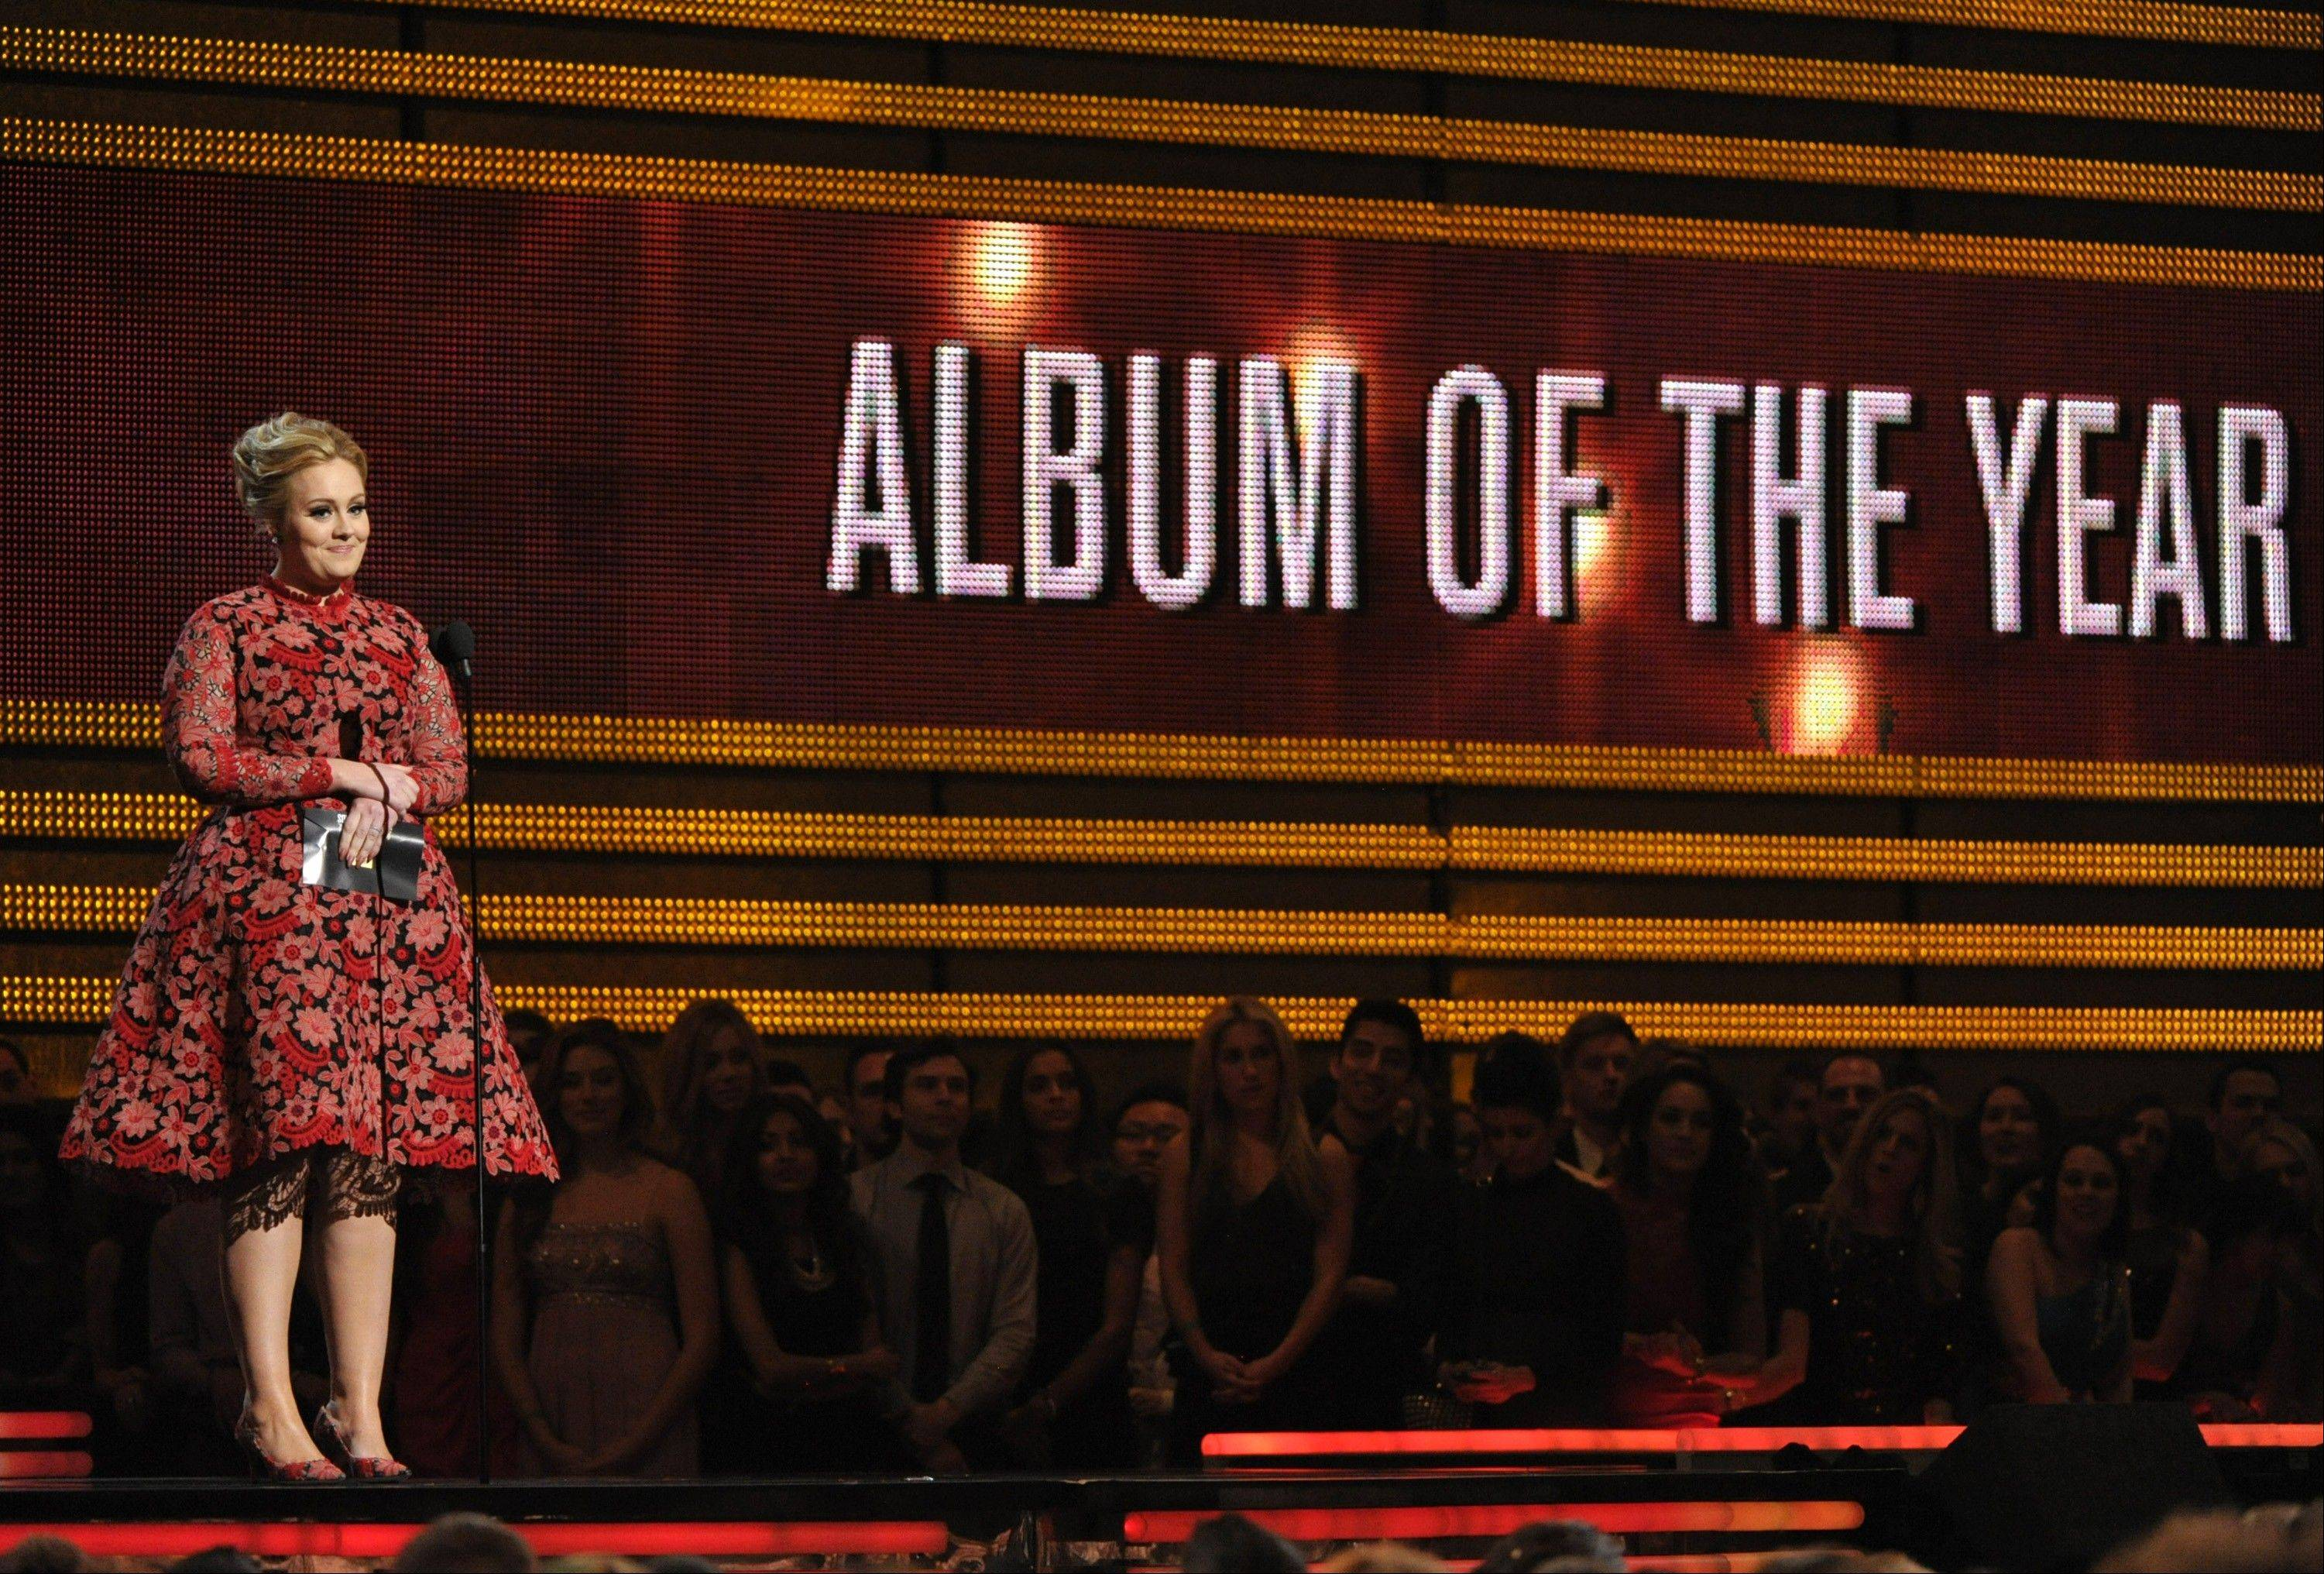 Adele presents the award for album of the year at the 55th annual Grammy Awards on Sunday, Feb. 10, 2013, in Los Angeles.